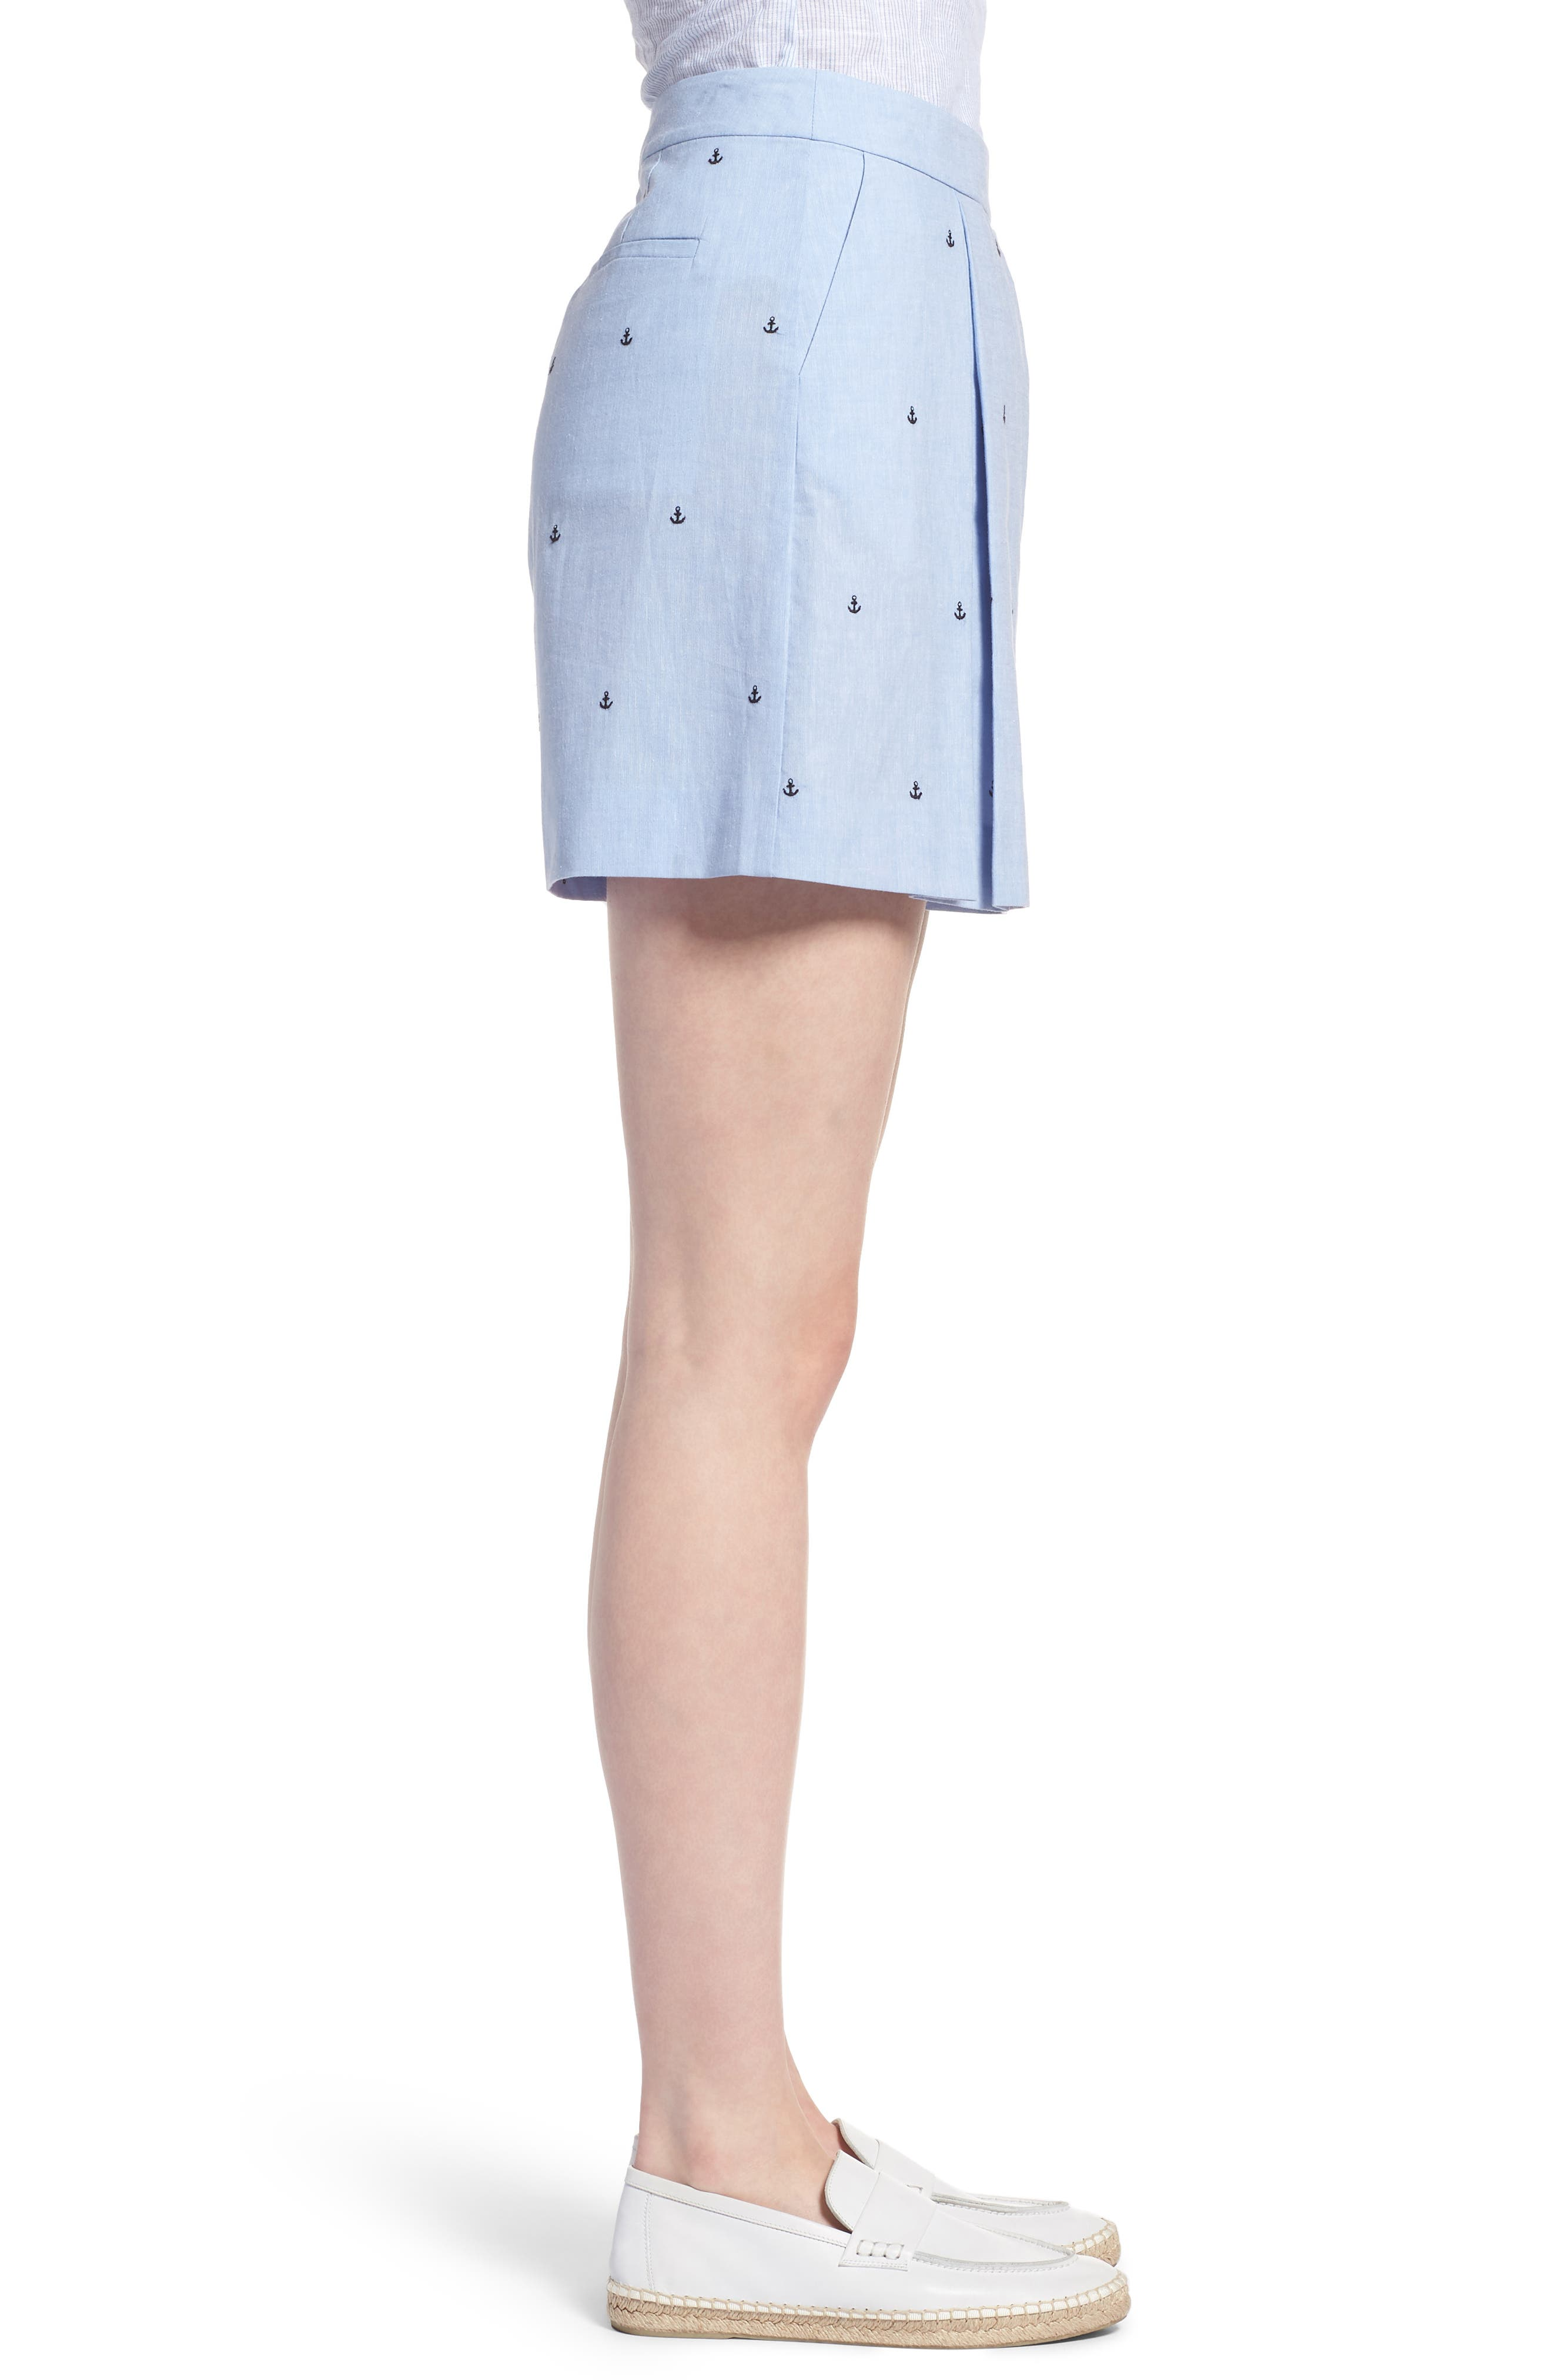 Anchor Embroidery Pleated Cotton Shorts,                             Alternate thumbnail 3, color,                             Chambray Anchor Print